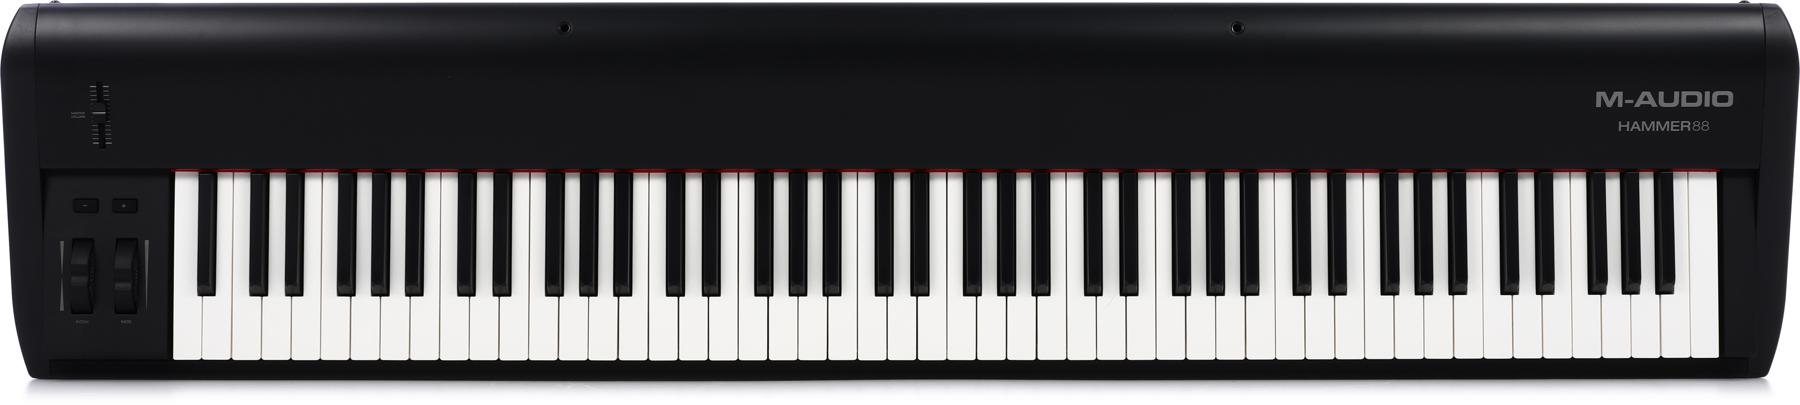 5. M-Audio Hammer 88-Key USB MIDI Keyboard